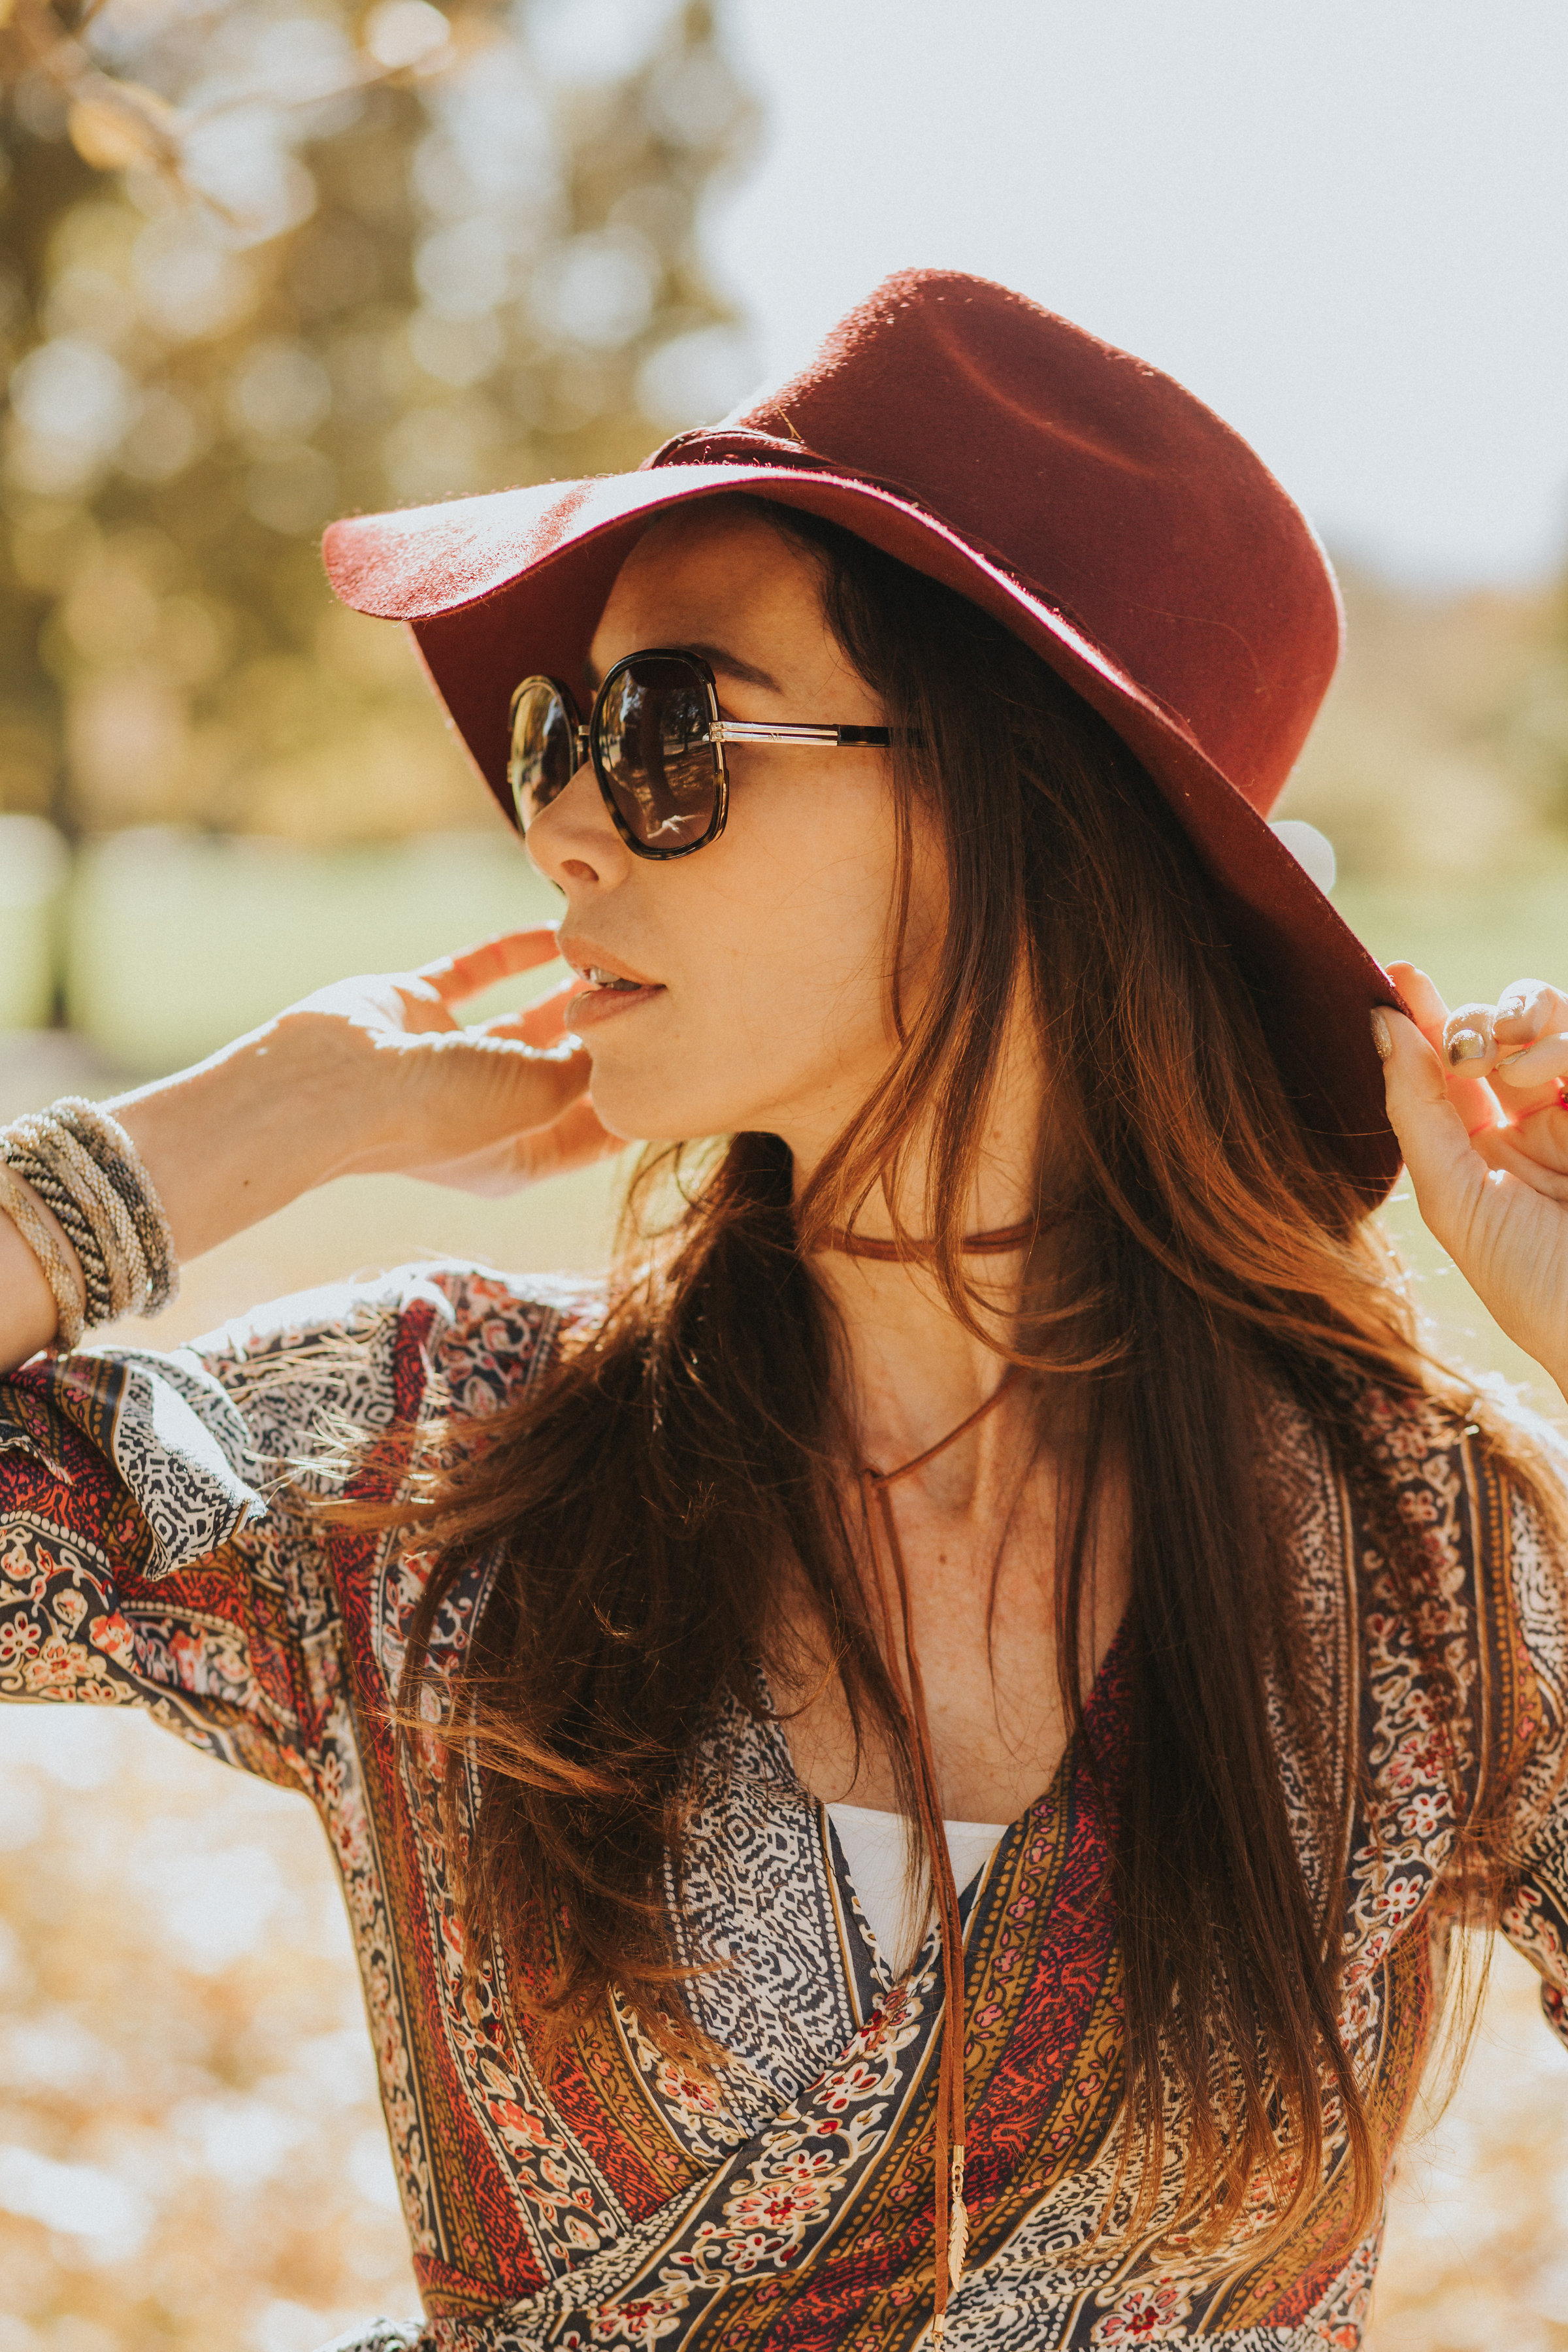 Free People floppy hat, Lily & Laura bracelets and homemade choker